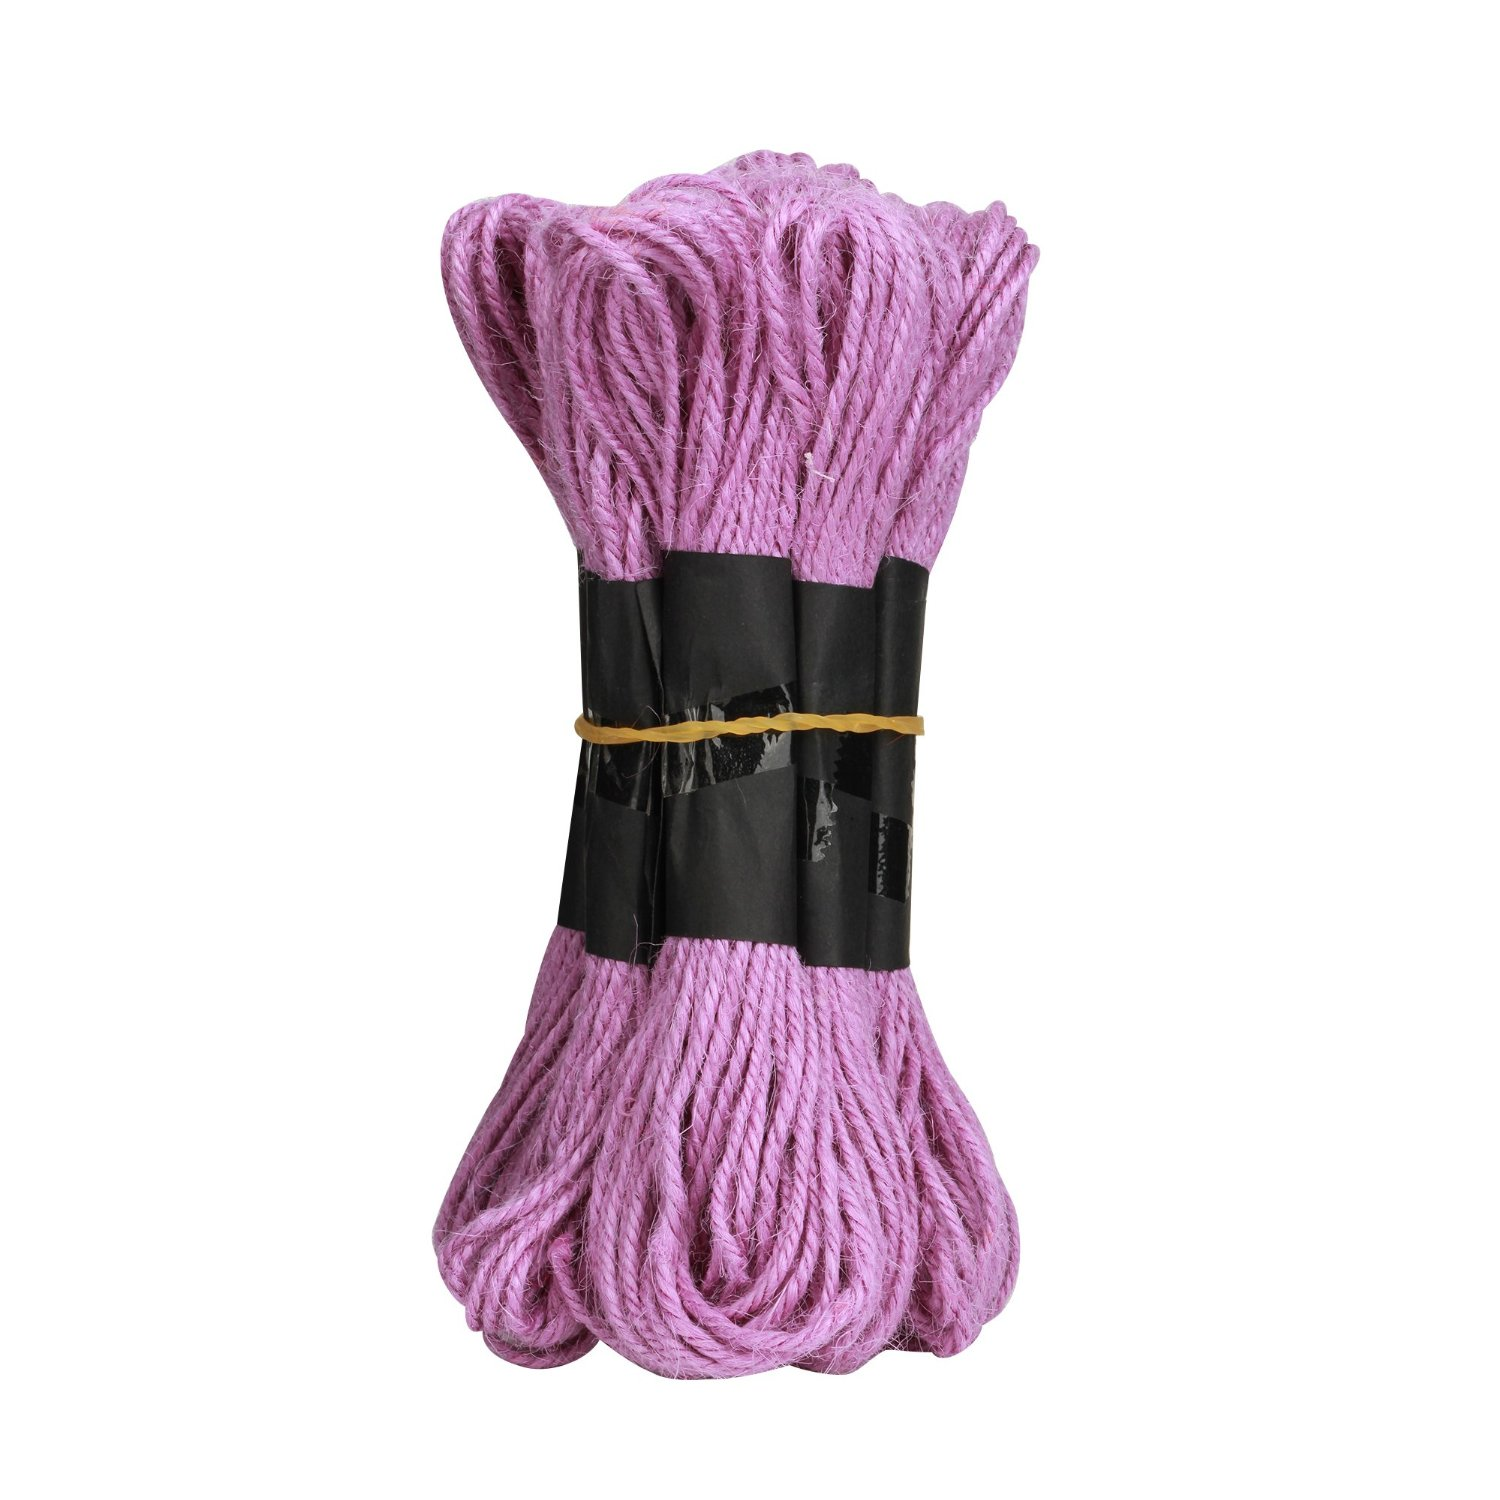 Shintop 300 Feet Sections Colorful Natural Jute Twine Best Industrial Packing Materials Heavy Duty Natural Jute Twine for Arts and Crafts and Gardening Applications (300 Feet Violet Twine)